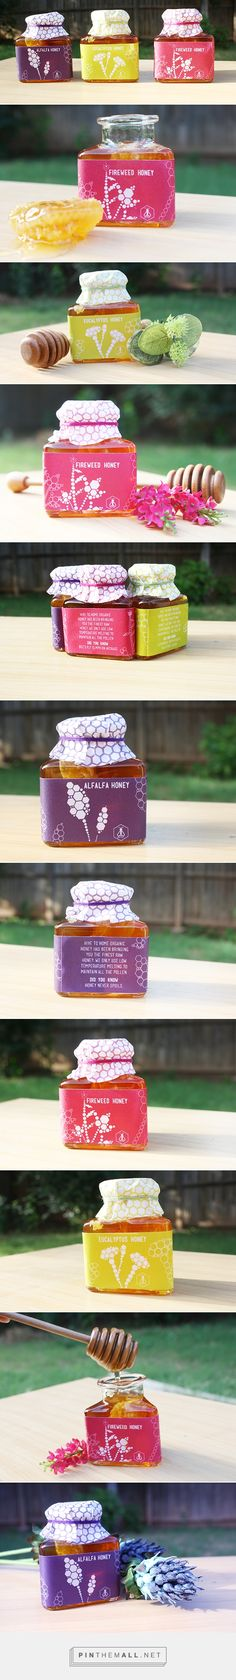 Hive to Home organic honey #packaging on #Behance by Denethi Mahaliyanage curated by Packaging Diva PD created via https://www.behance.net/gallery/19794781/Hive-to-Home-organic-honey